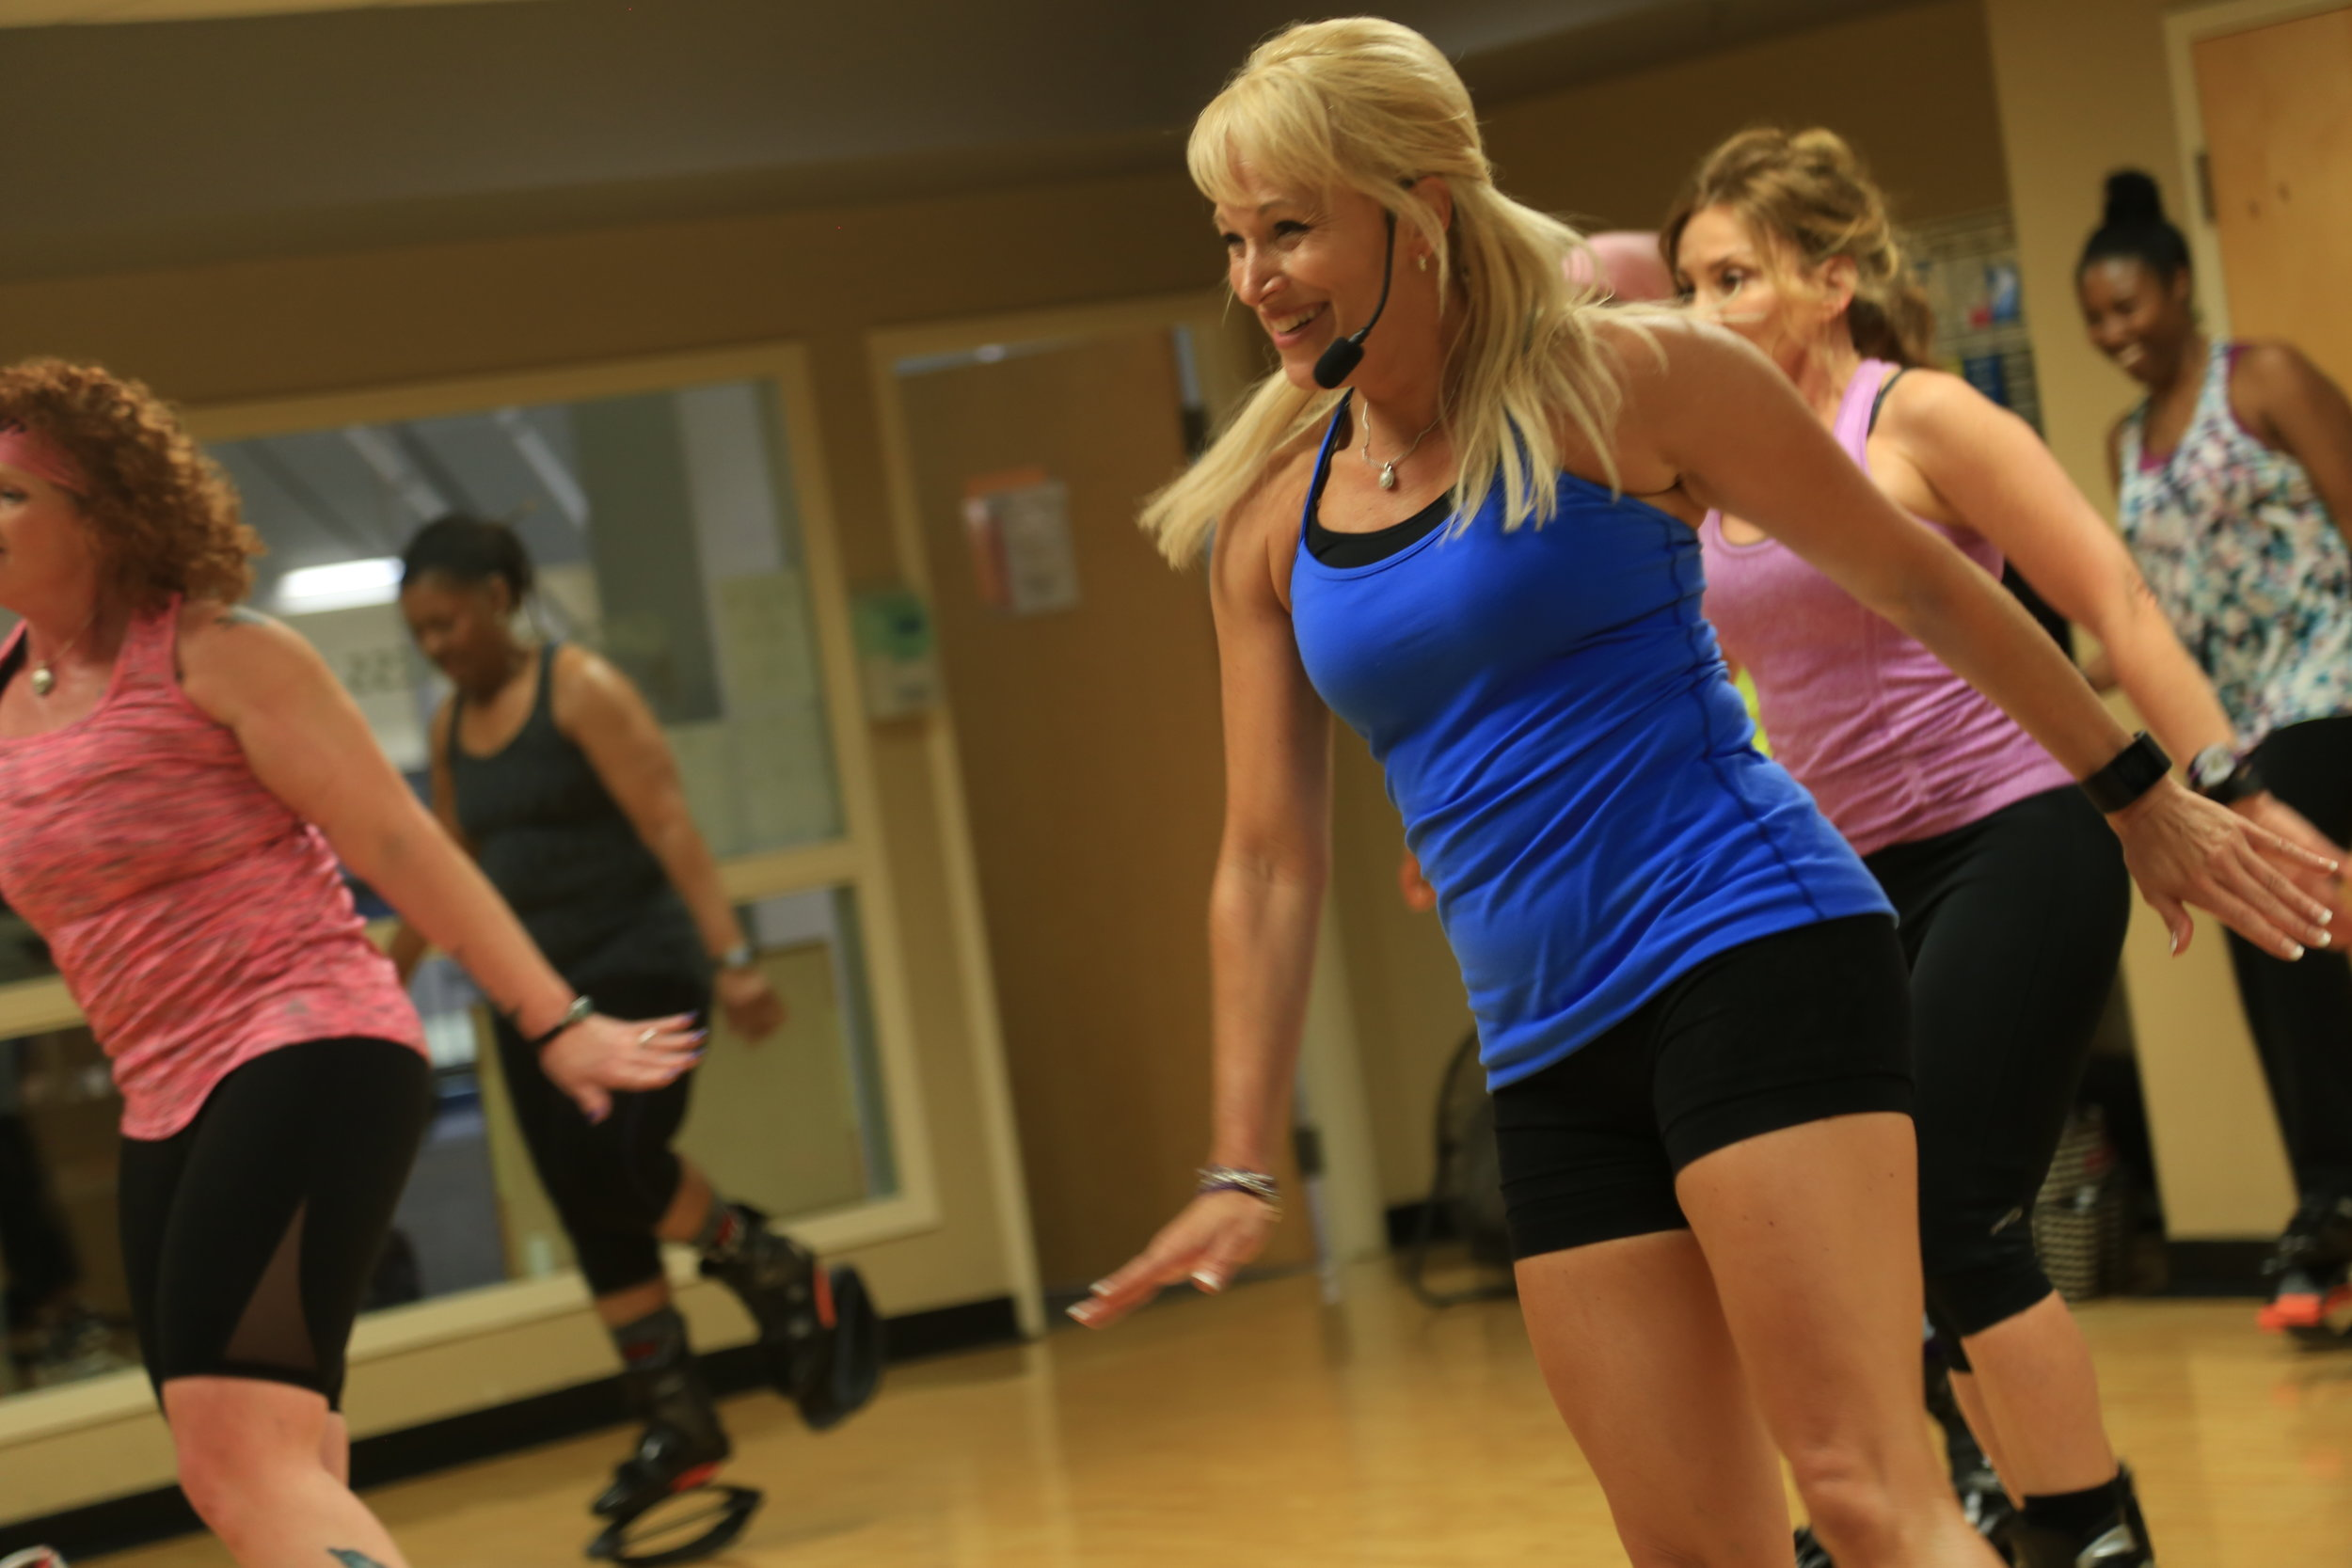 Michelle Davis is the Owner and Head Instructor at JumpFit Indy